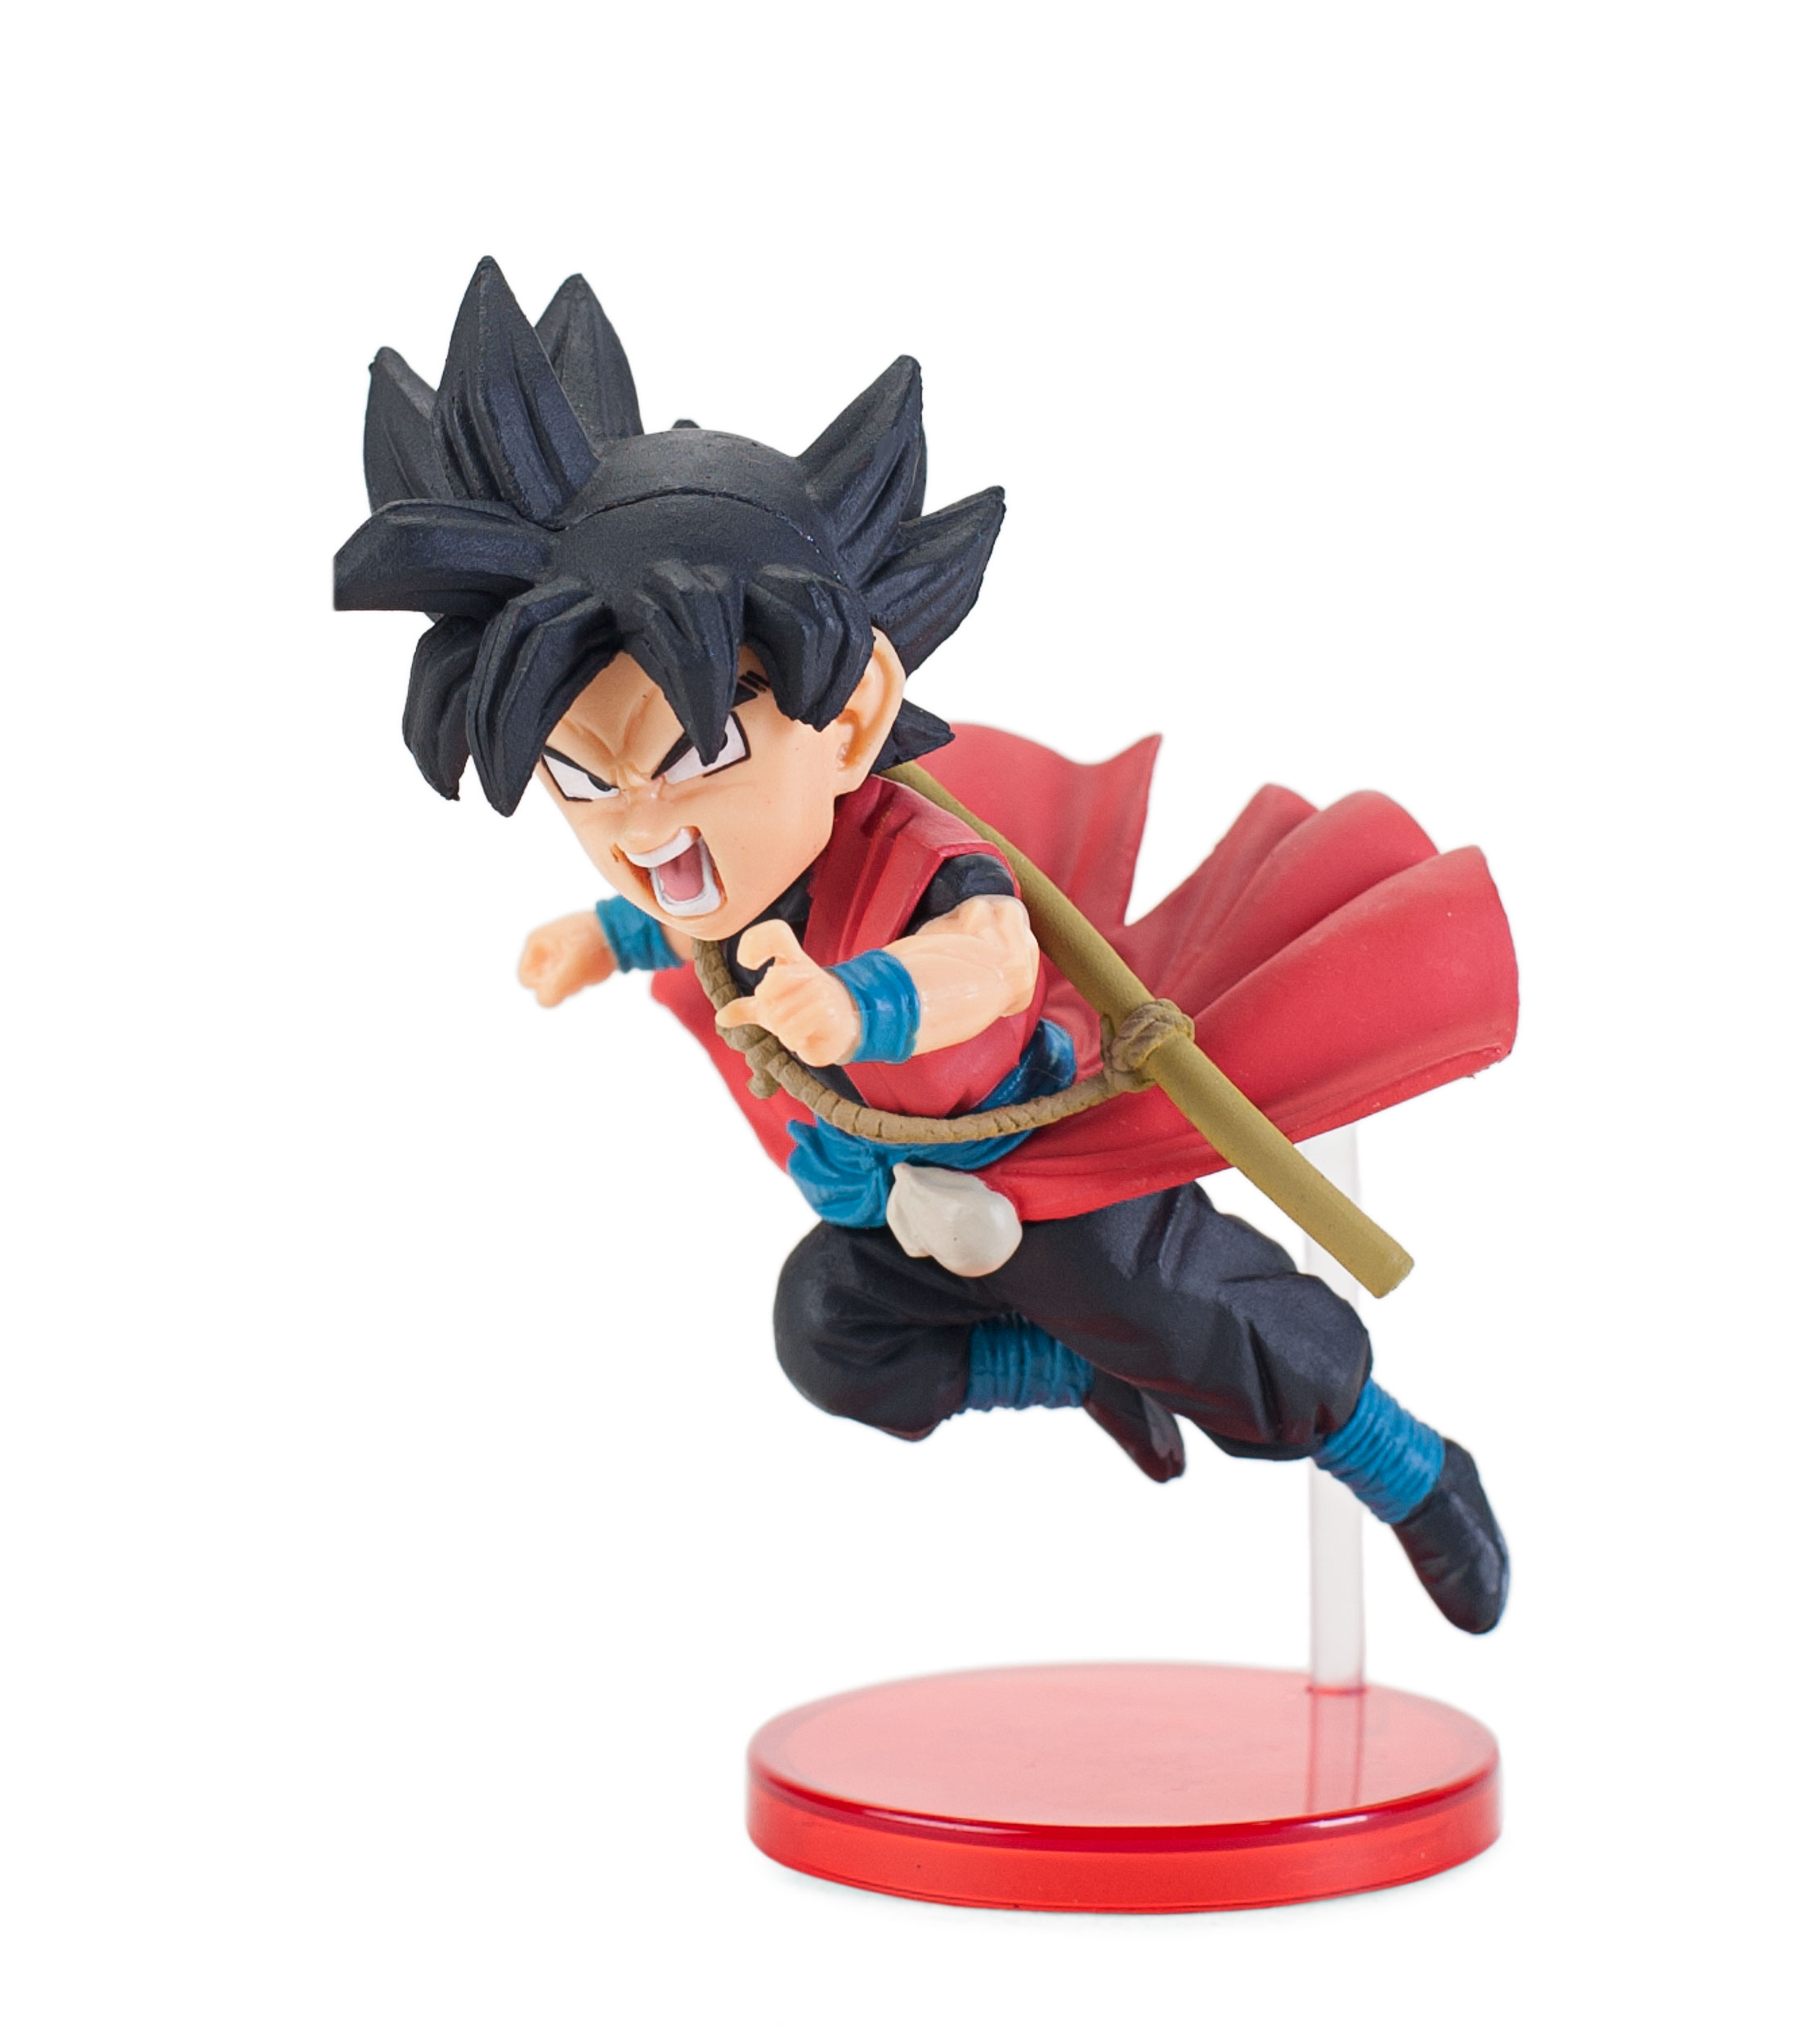 Super Dragon Ball Heroes Xeno Future Trunks 7th Anniversary WCF Figure